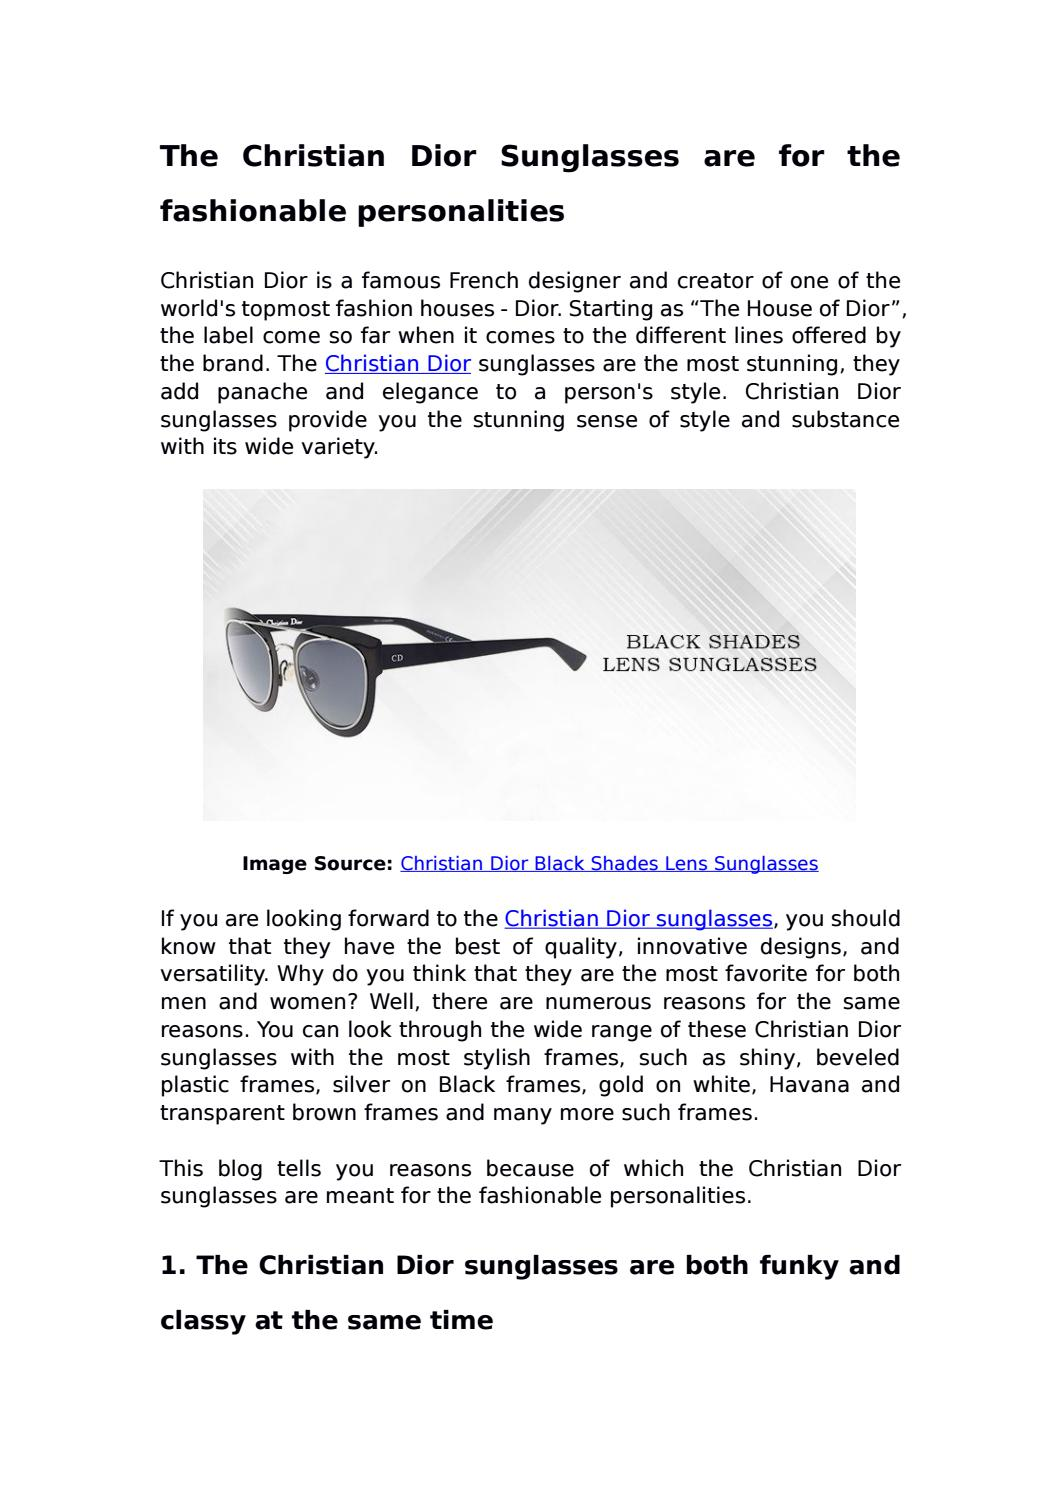 88a7ffab031 The Christian Dior Sunglasses are for the fashionable personalities by  Darveys - issuu